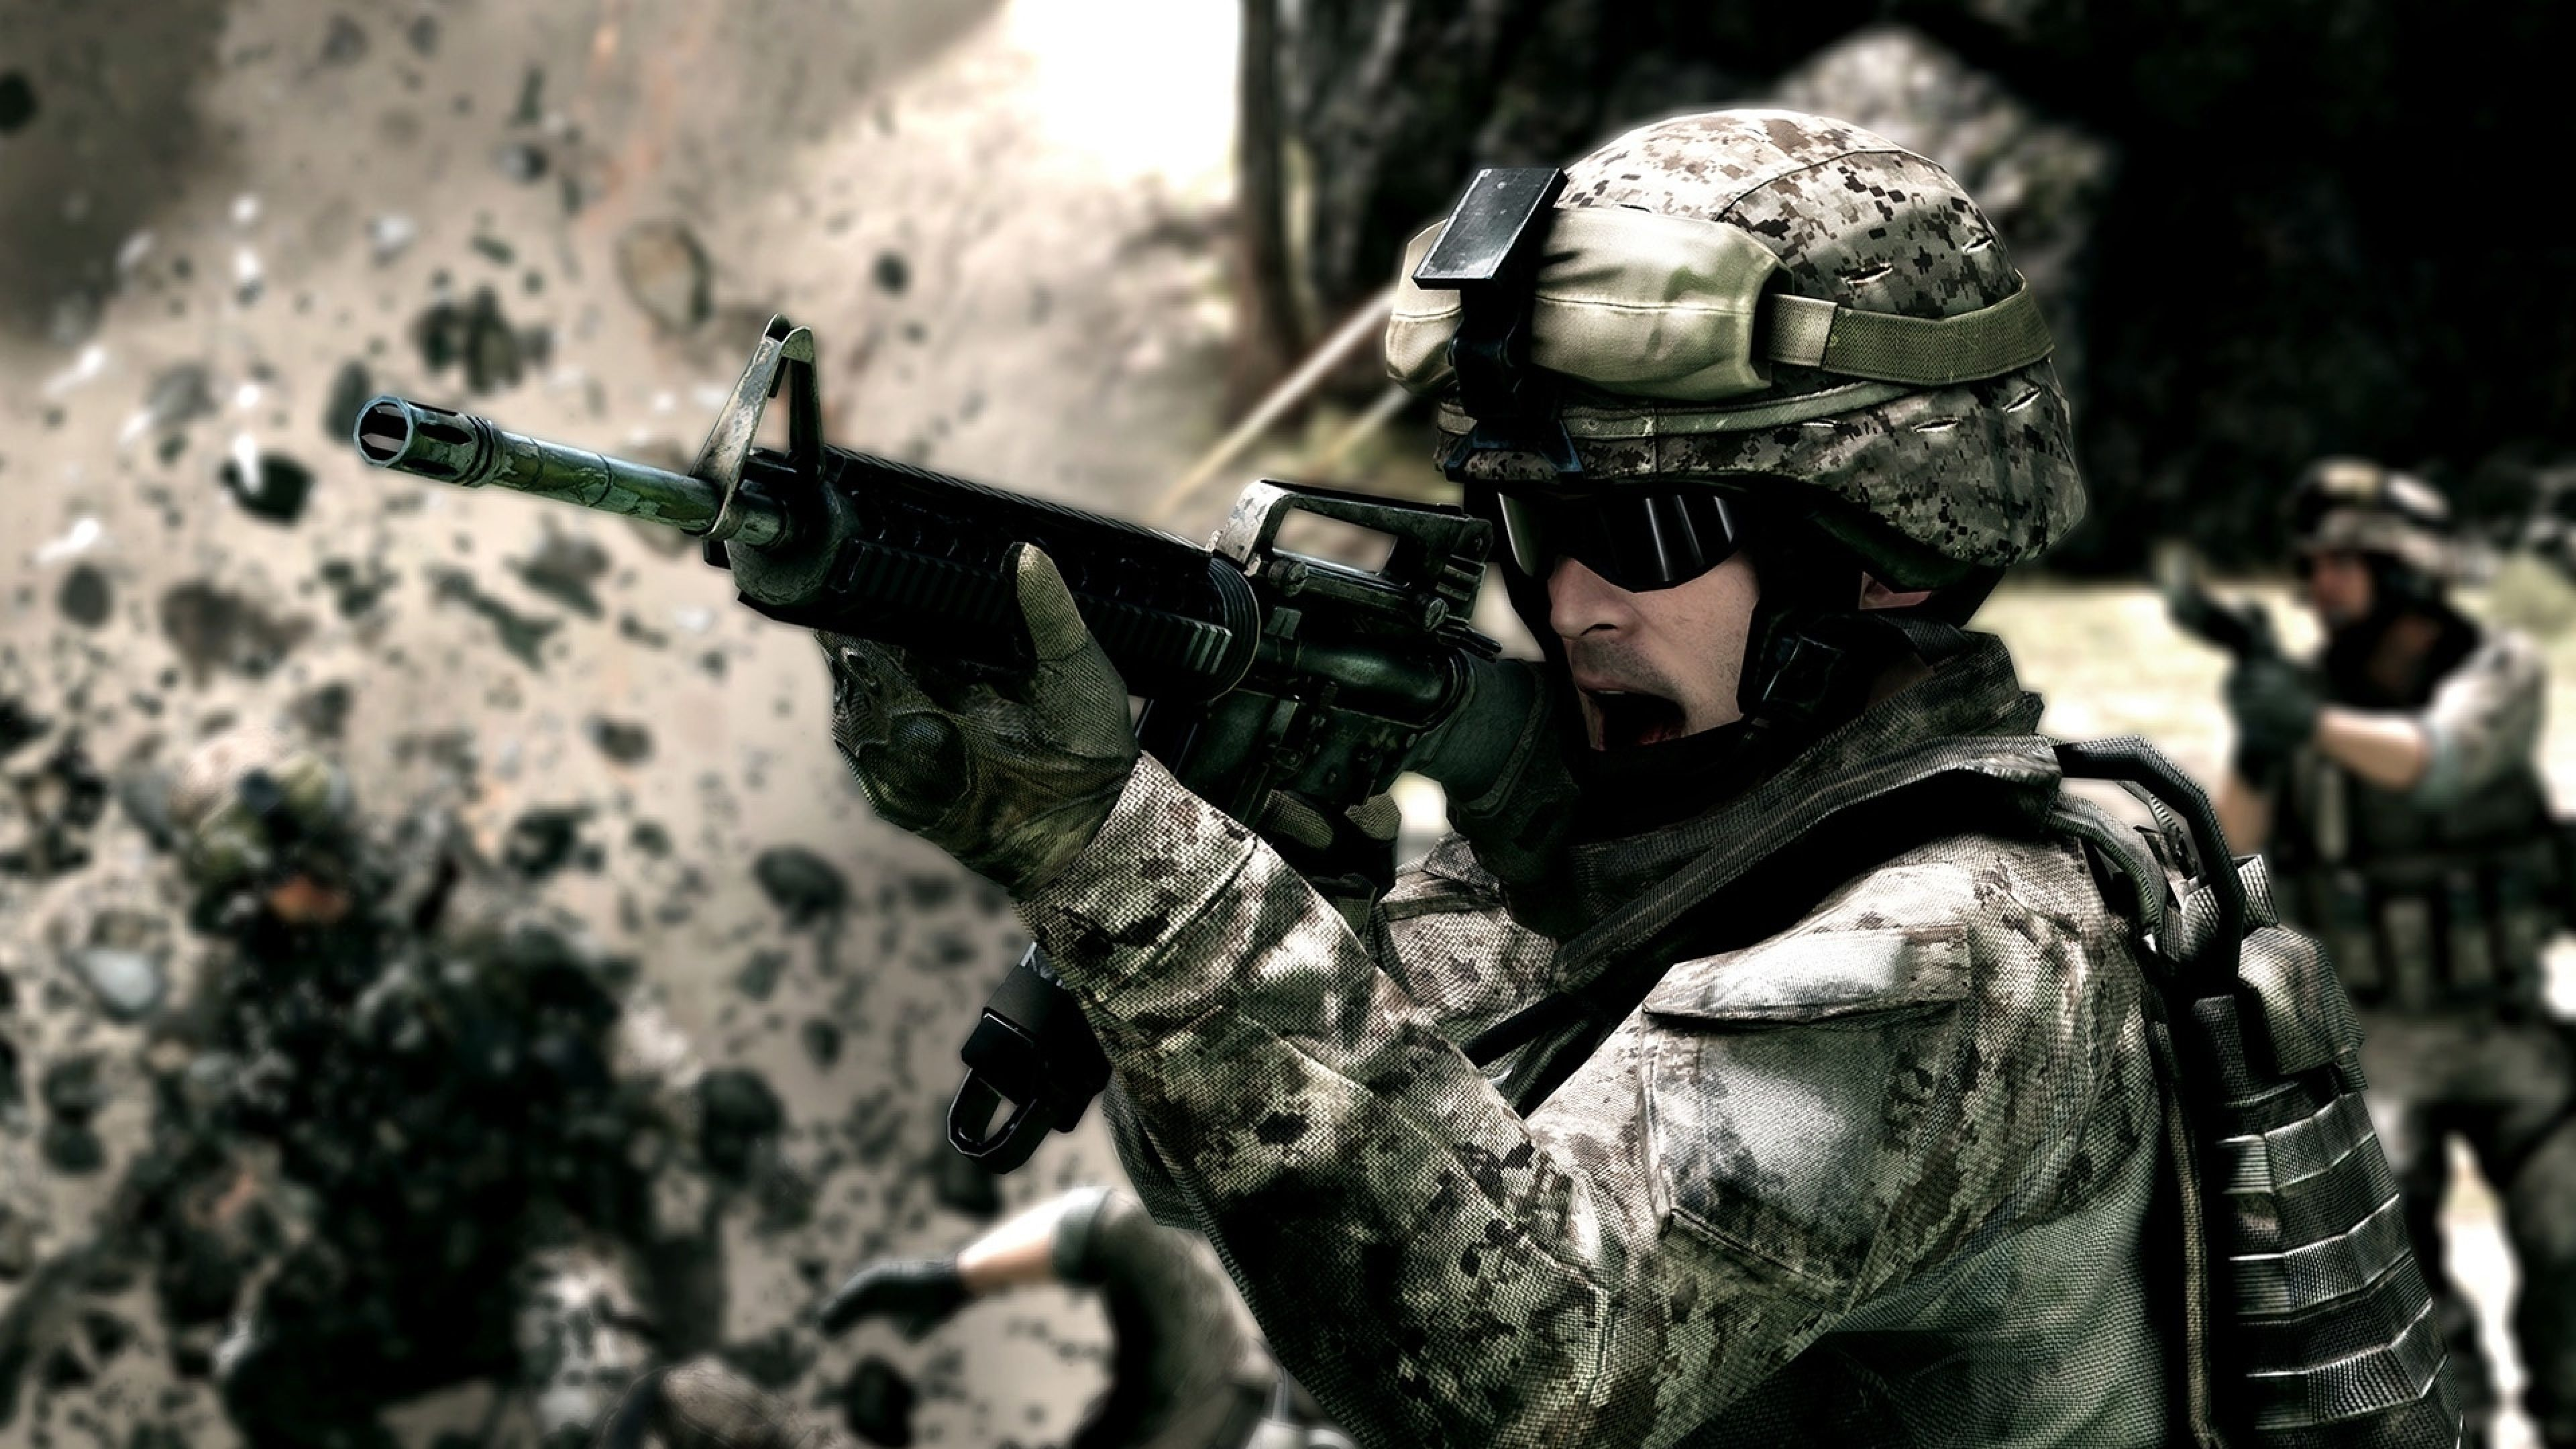 Pin By Gabriel Snipes On Gaming Army Soldier Army Wallpaper Battlefield